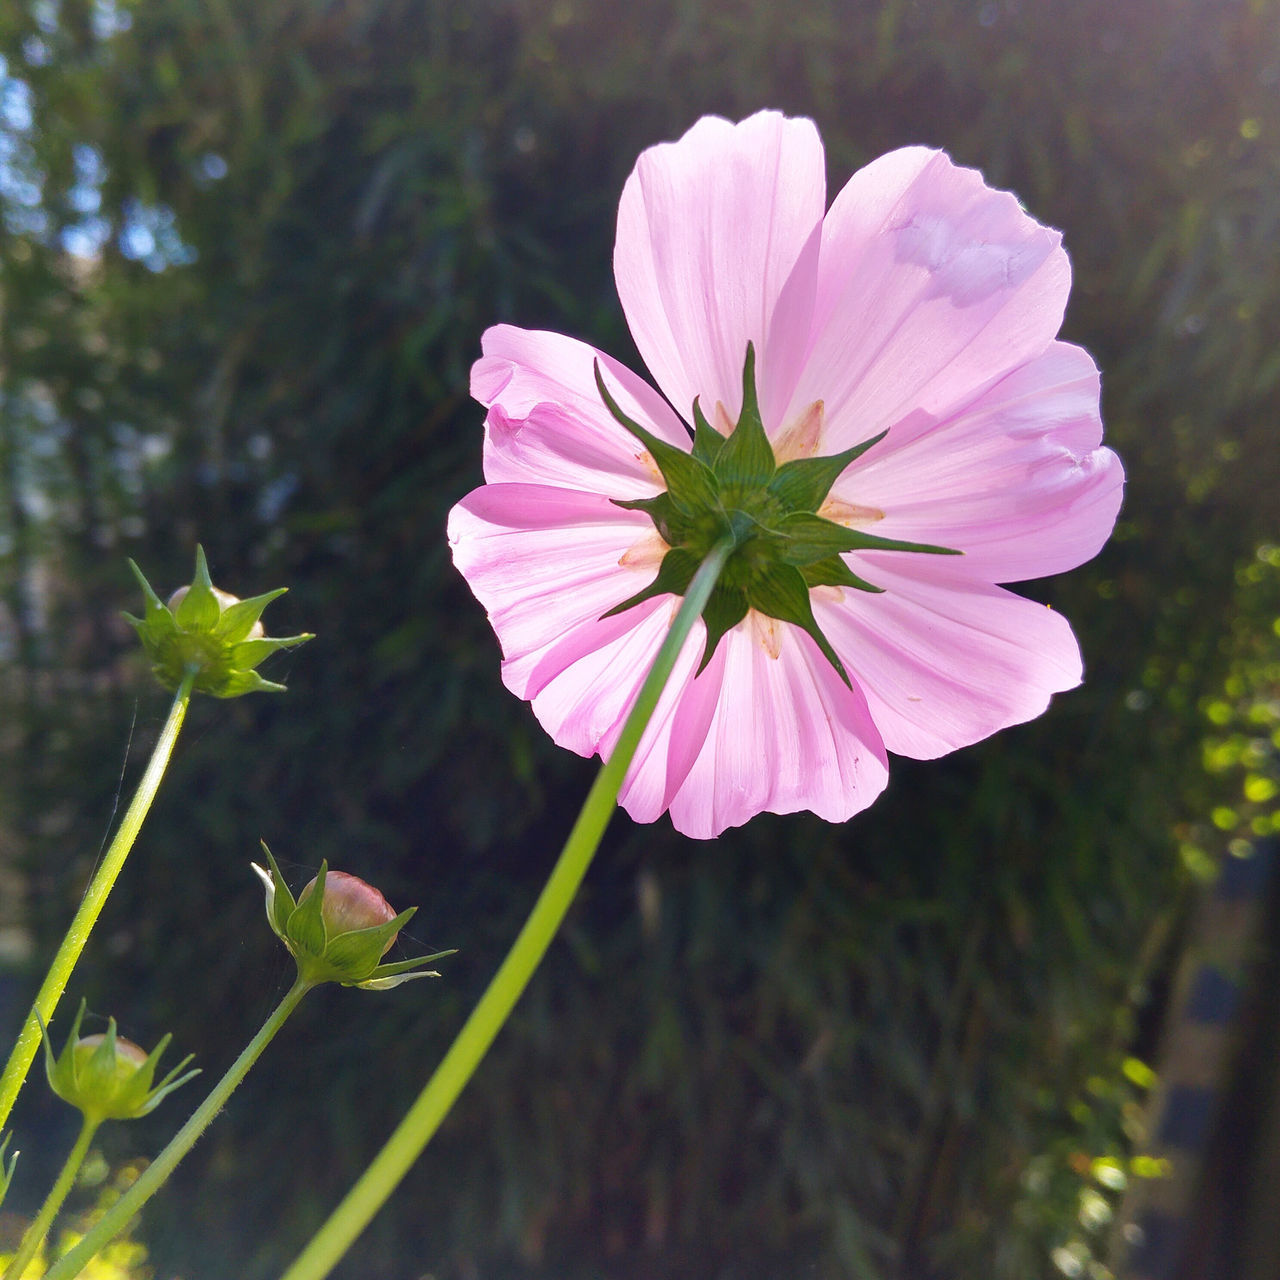 flower, nature, plant, growth, fragility, beauty in nature, petal, freshness, no people, outdoors, blooming, day, flower head, close-up